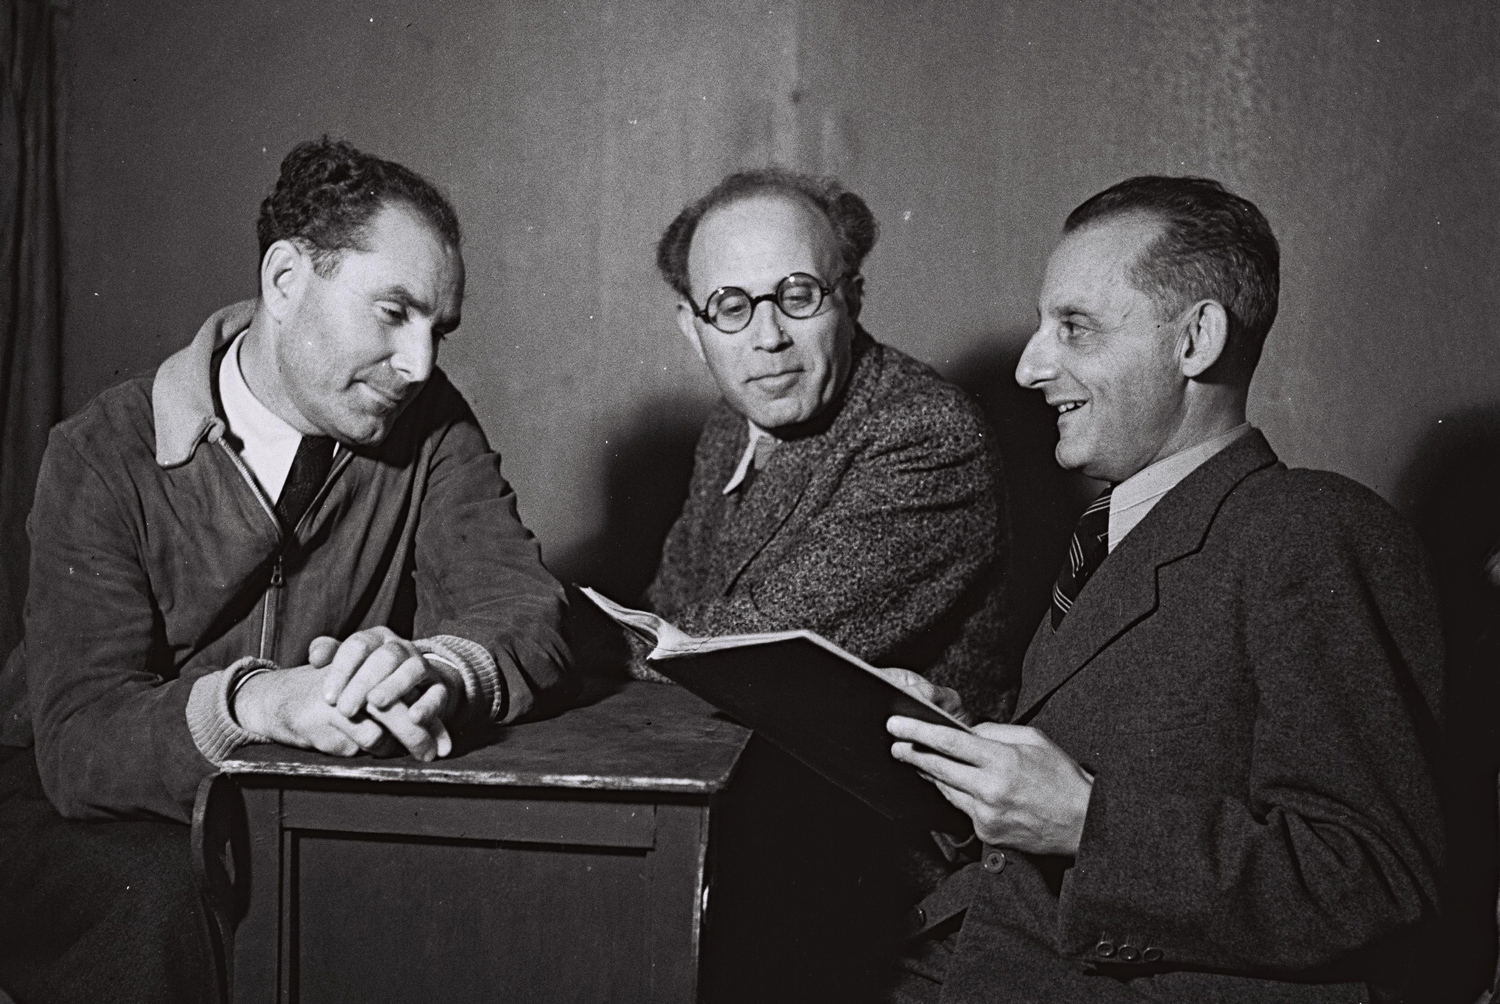 Max Brod, Kafka's close friend and fervent Zionist, escaped from Czechoslovakia on the last train before the country's annexation by Nazi Germany in 1939. Making his way to Palestine, he joined the Habima Theater but wrote and published in German until his death in 1968. Brod (right) with Habima members Baruch Chemerinski and Zvi Friedland, 1942